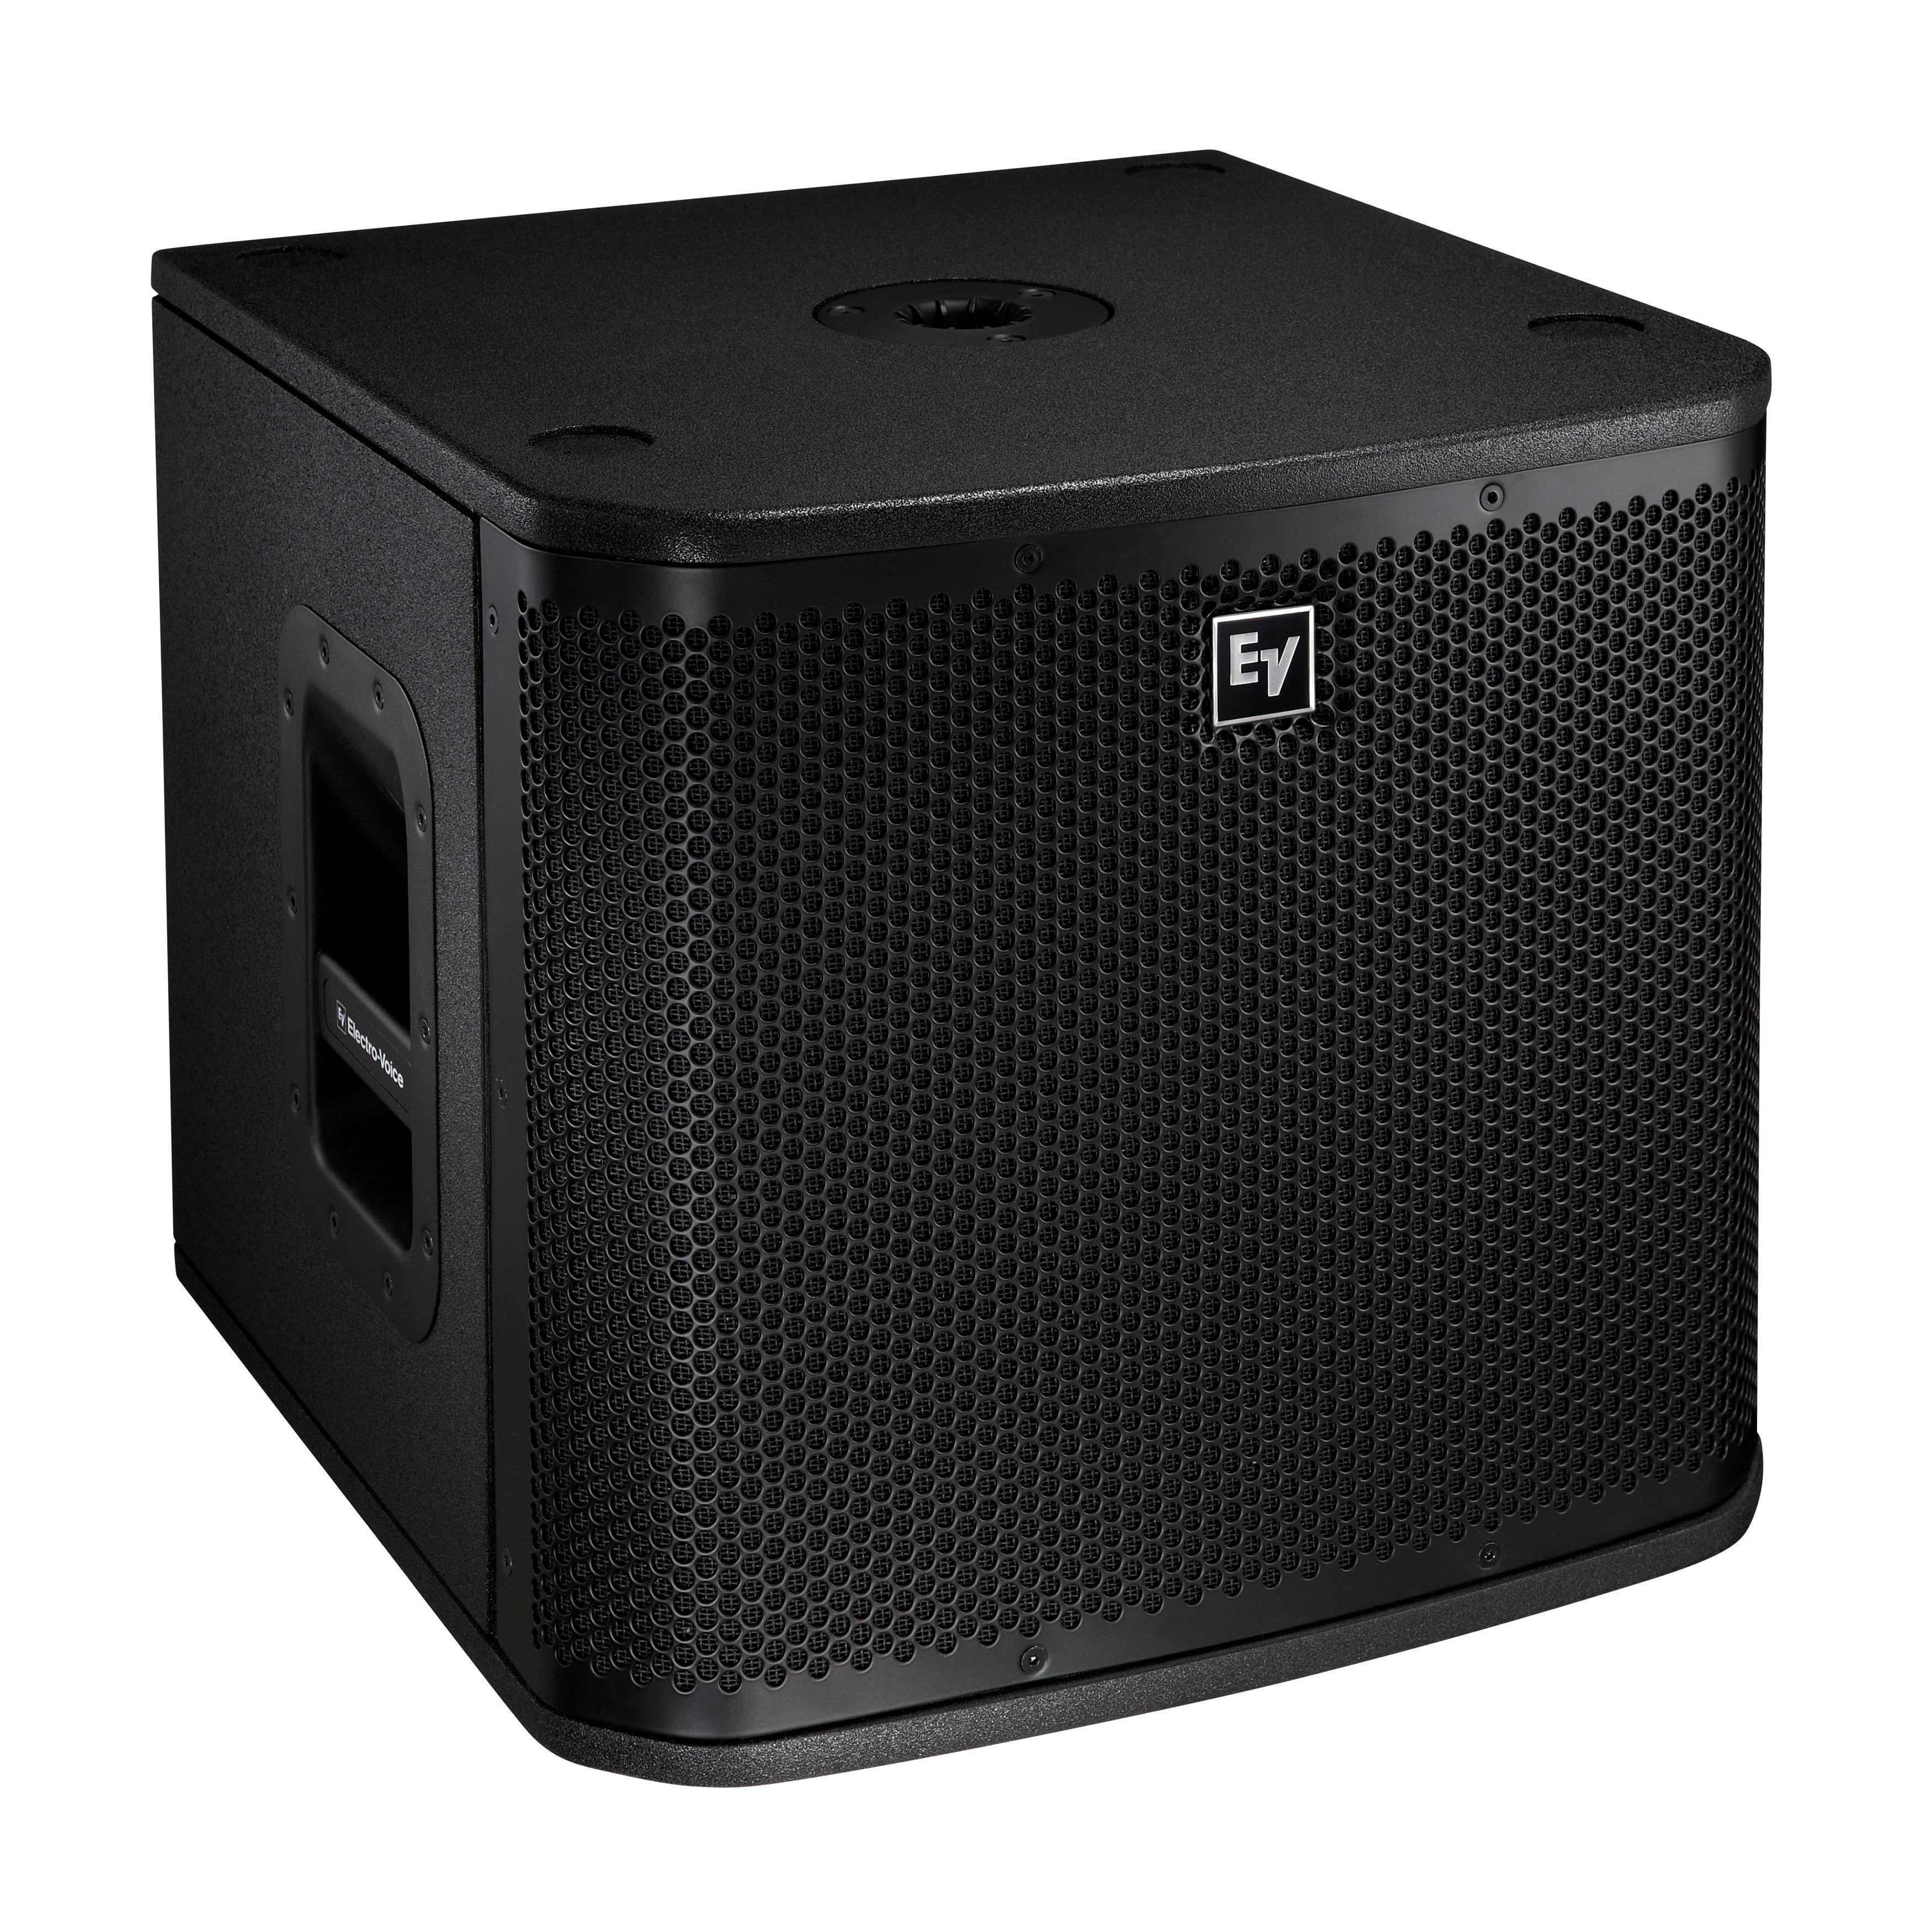 amazon com electro voice zxa1sub 12 compact powered subwoofer rh amazon com Electro-Voice Logo Electro-Voice Logo